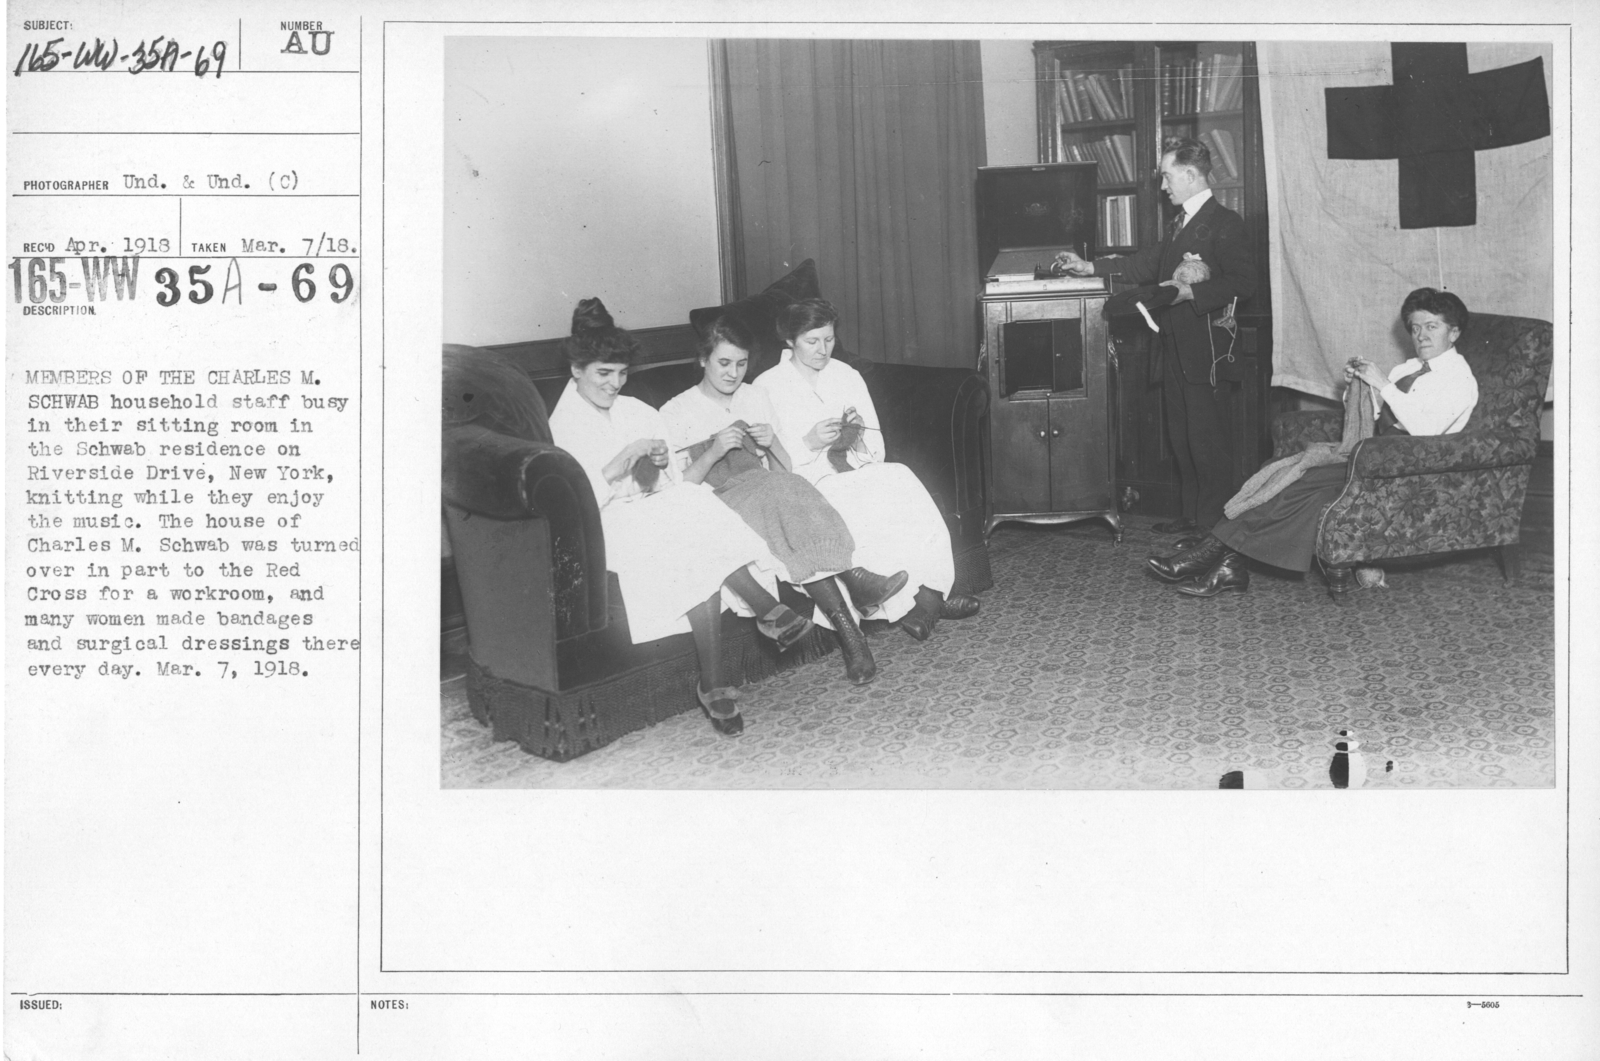 American Red Cross - Classes in Red Cross Work - Members of the Charles M. Schwab household staff busy in their sitting room in the Schwab residence on Riverside Drive, New York, knitting while they enjoy the music. The house of Charles M. Schwab was turned over in part to the Red Cross for a workroom, and many women made bandages and surgical dressings there every day